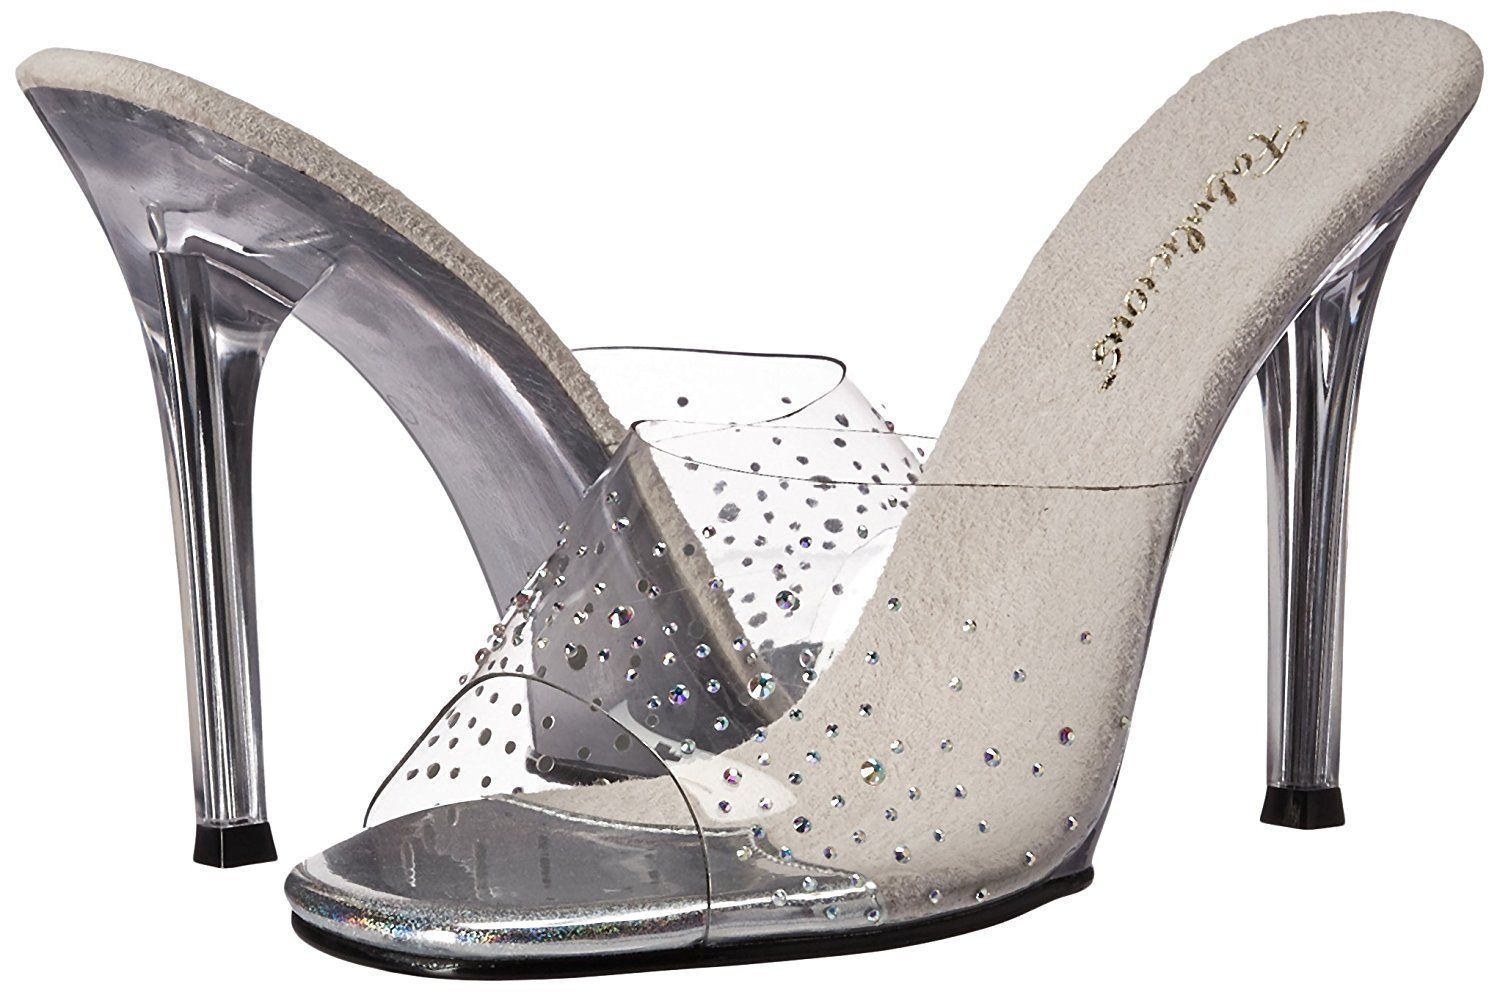 dd8af01e50 Fabulicious Women's Gala01sd/c/m Slide Sandal *** See this great product.  (This is an affiliate link) #sandlesforwomen